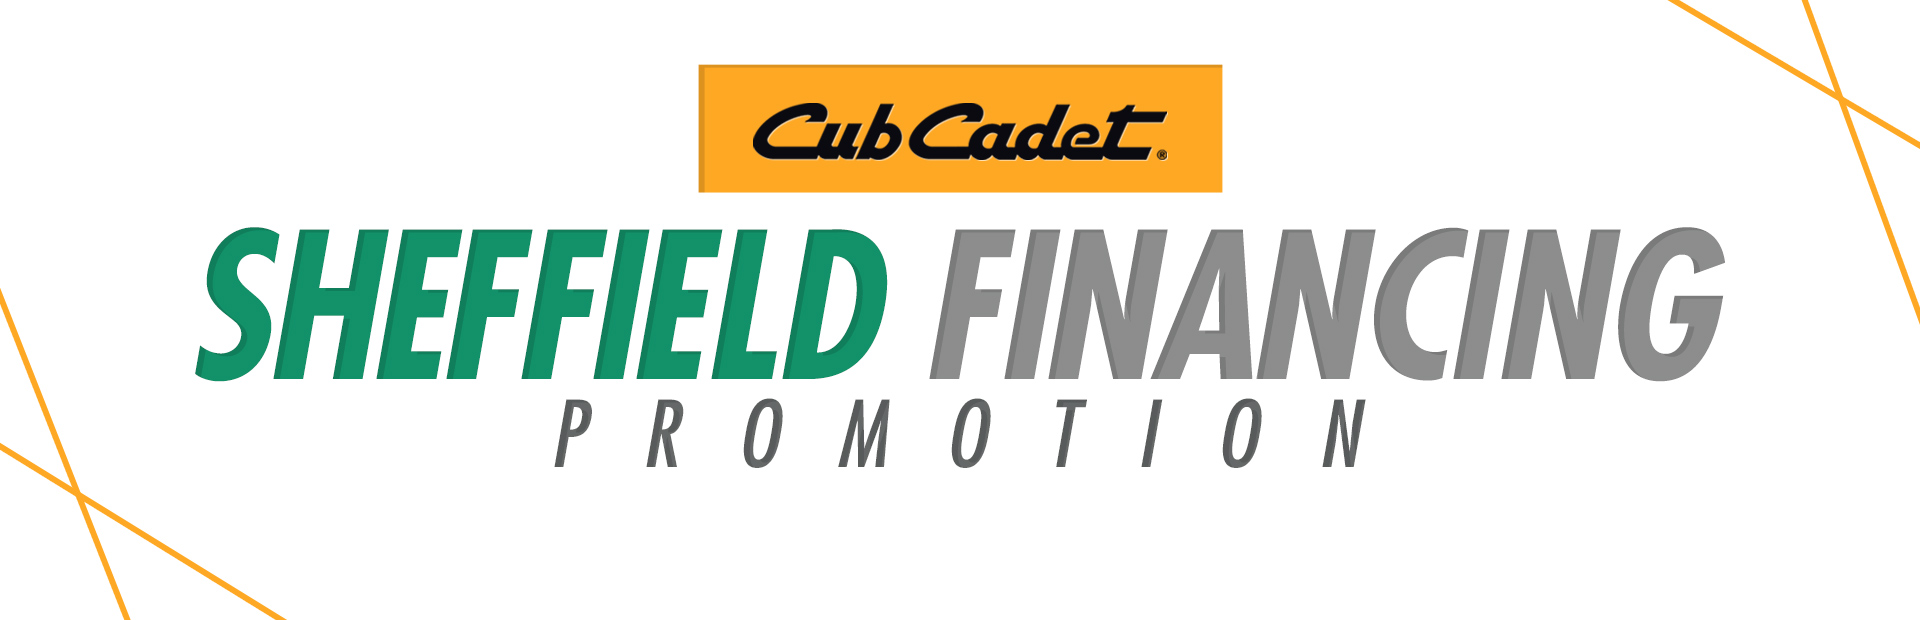 Cub Cadet: Sheffield Financing